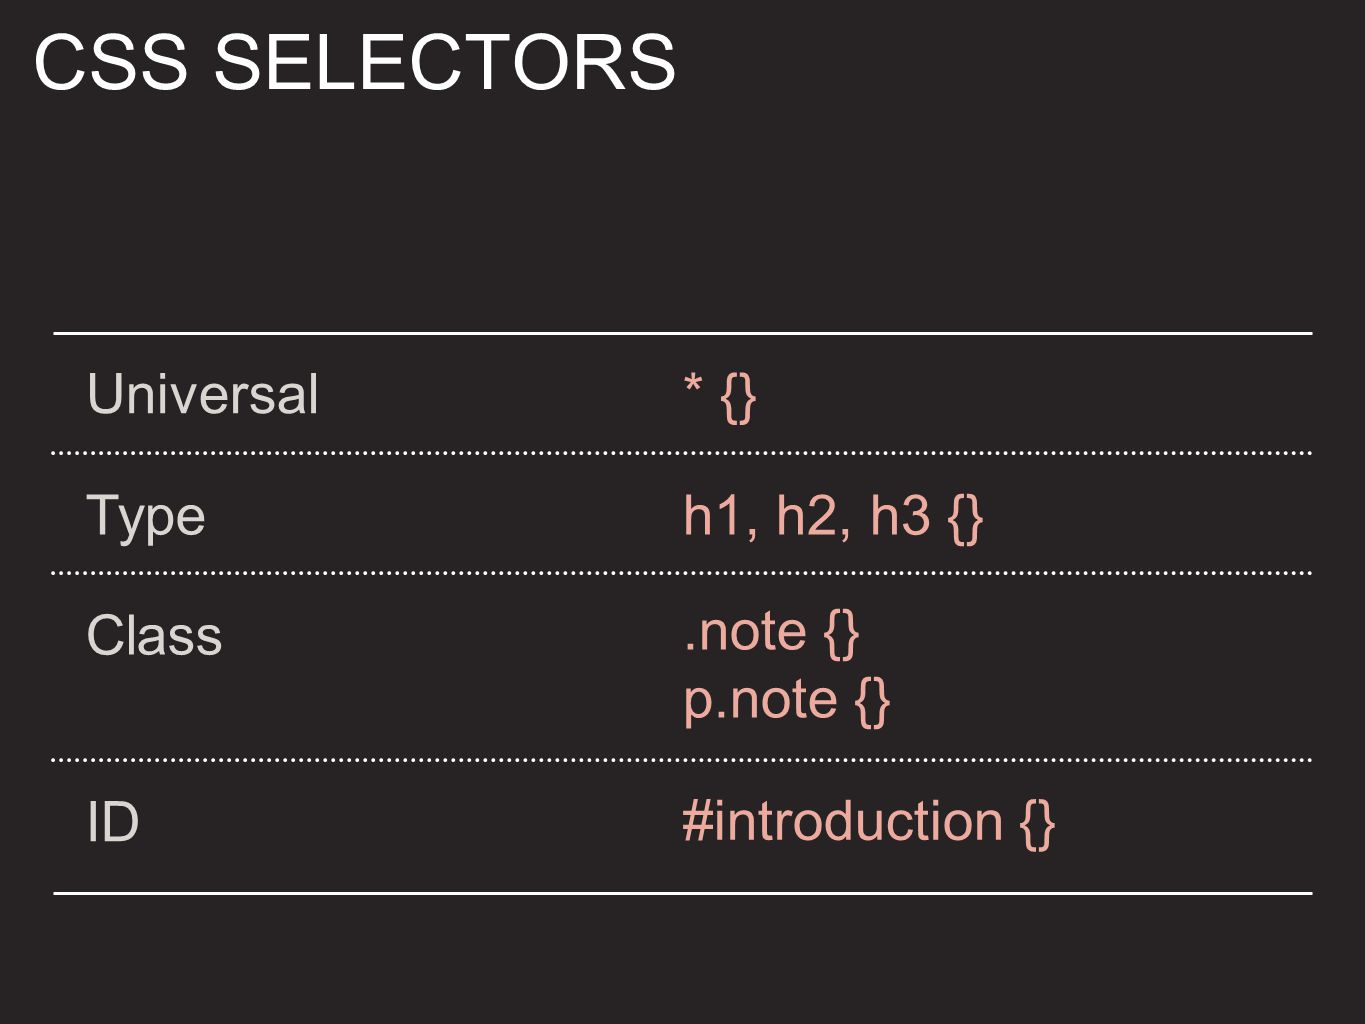 CSS SELECTORS Universal* {} Typeh1, h2, h3 {} Class.note {} p.note {} ID #introduction {}